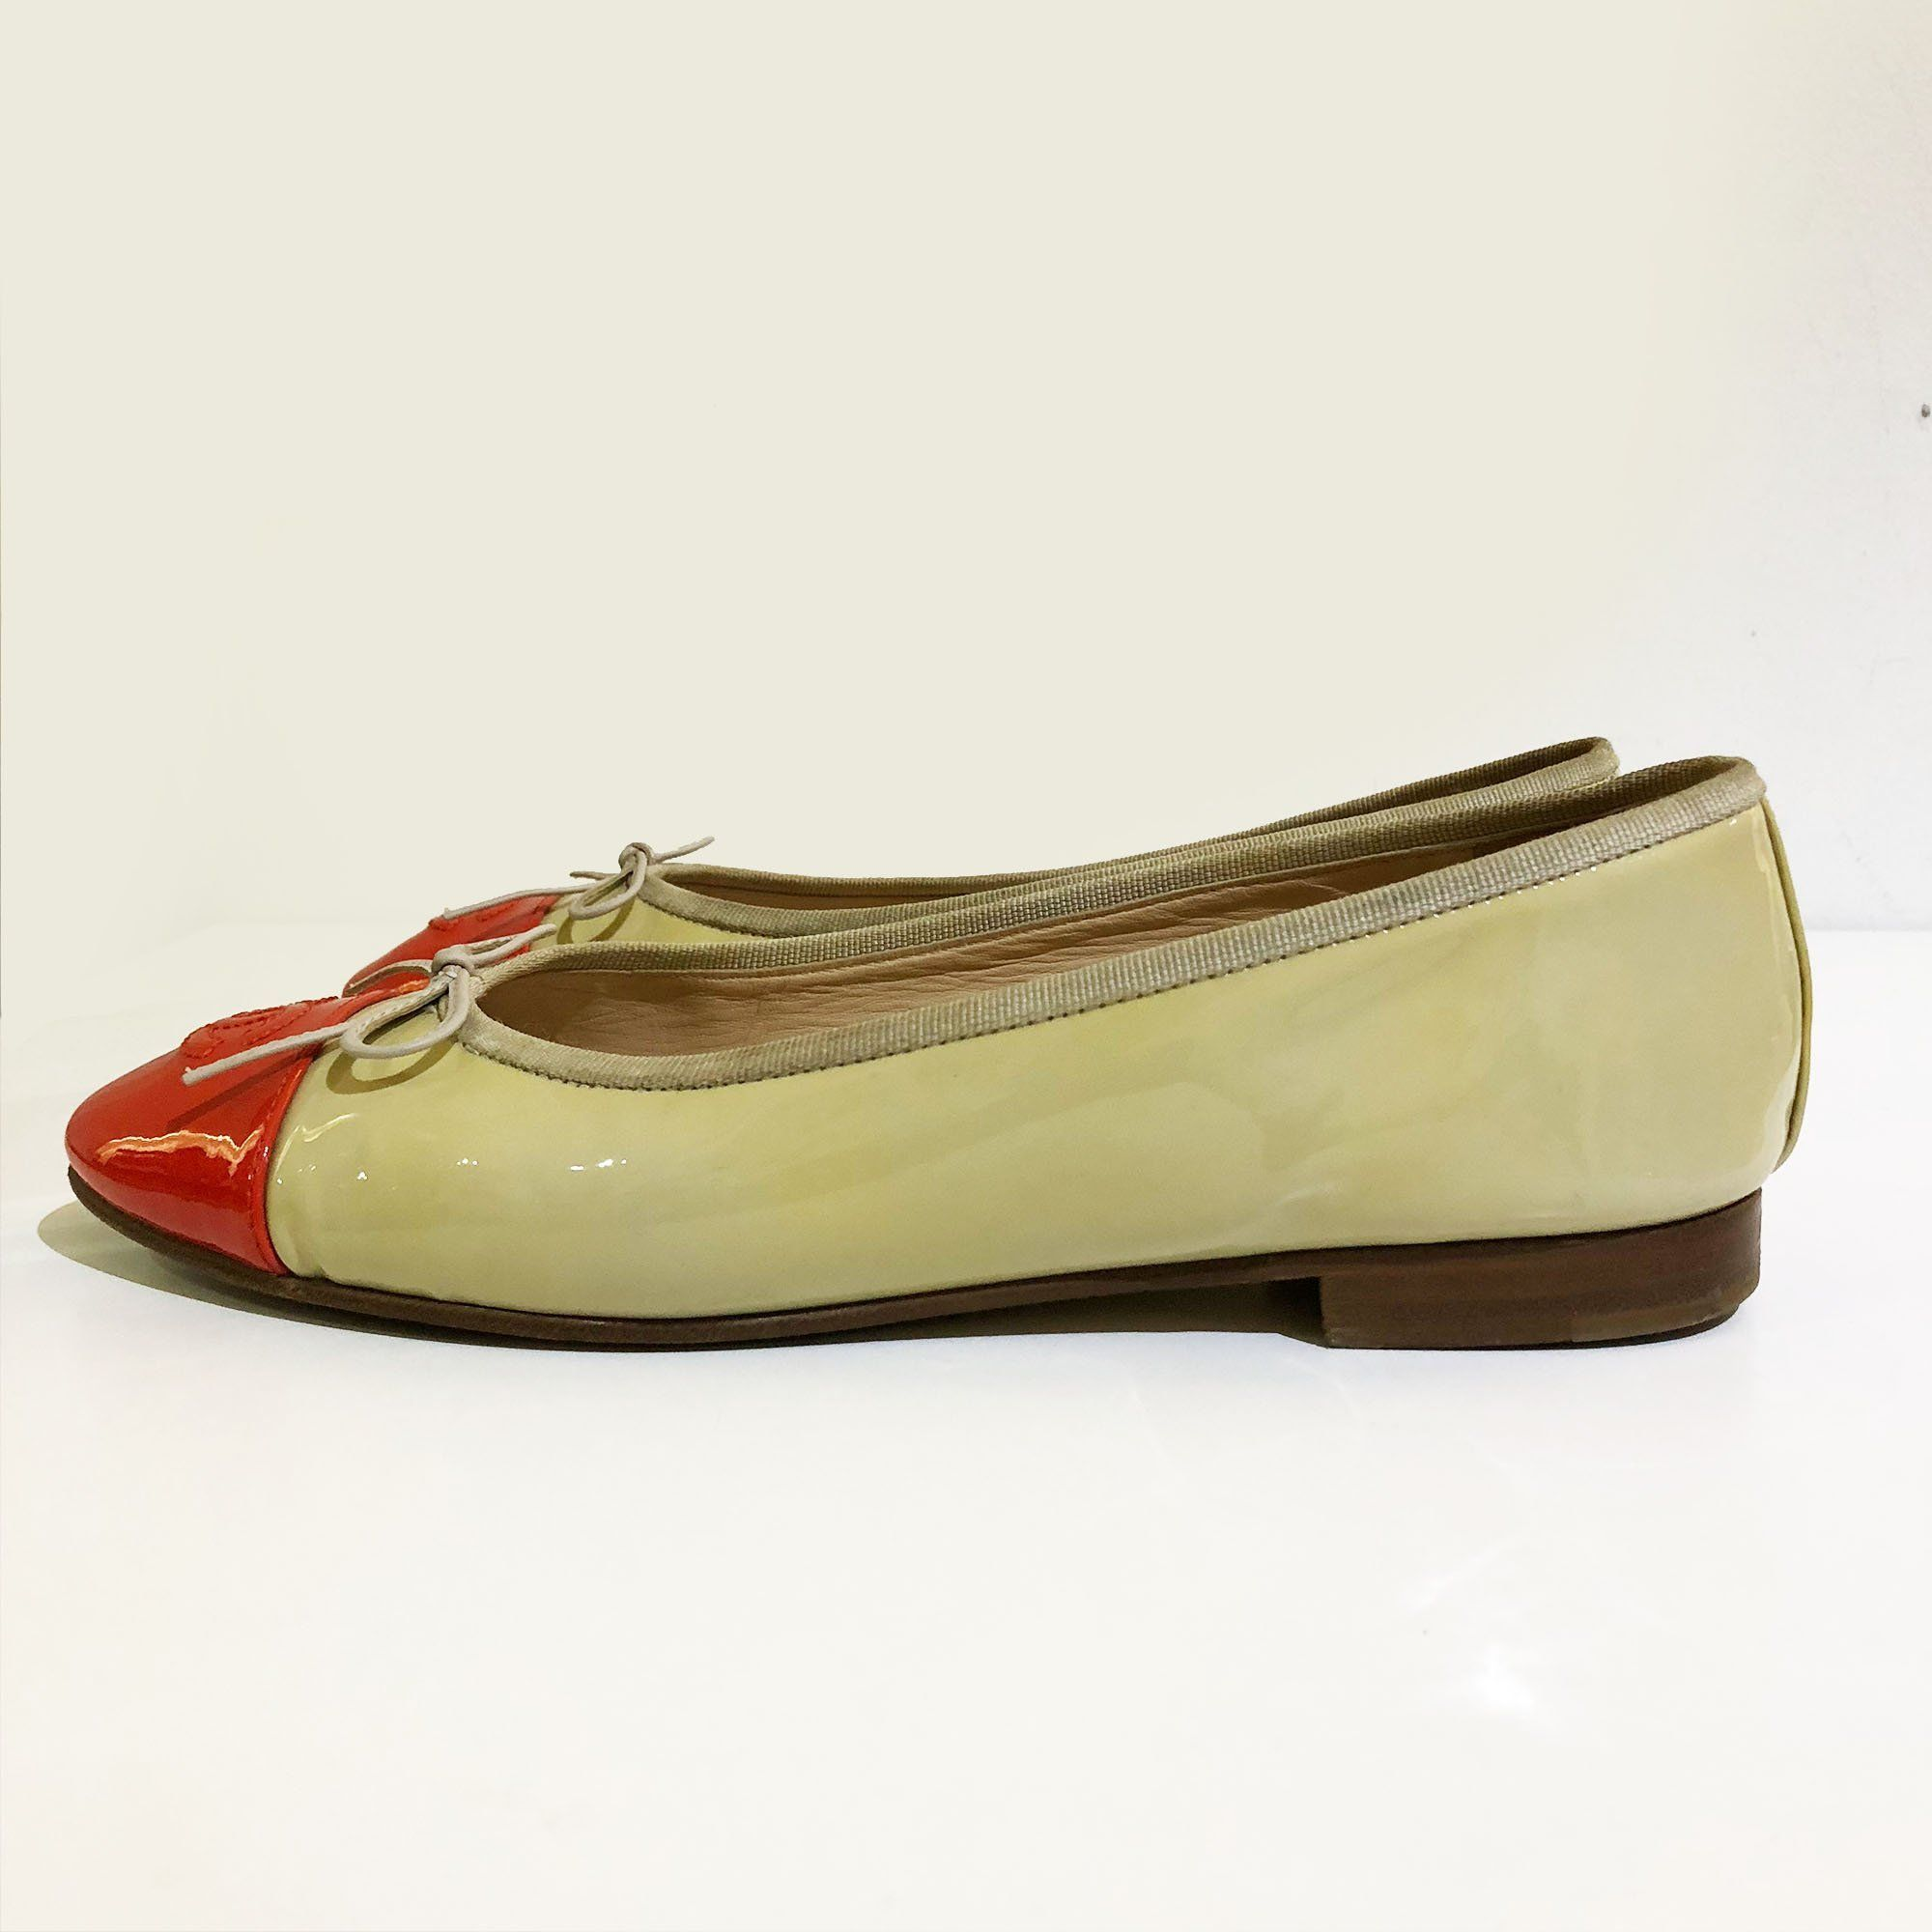 Chanel Ballerina in Beige and Red Orange Patent Leather